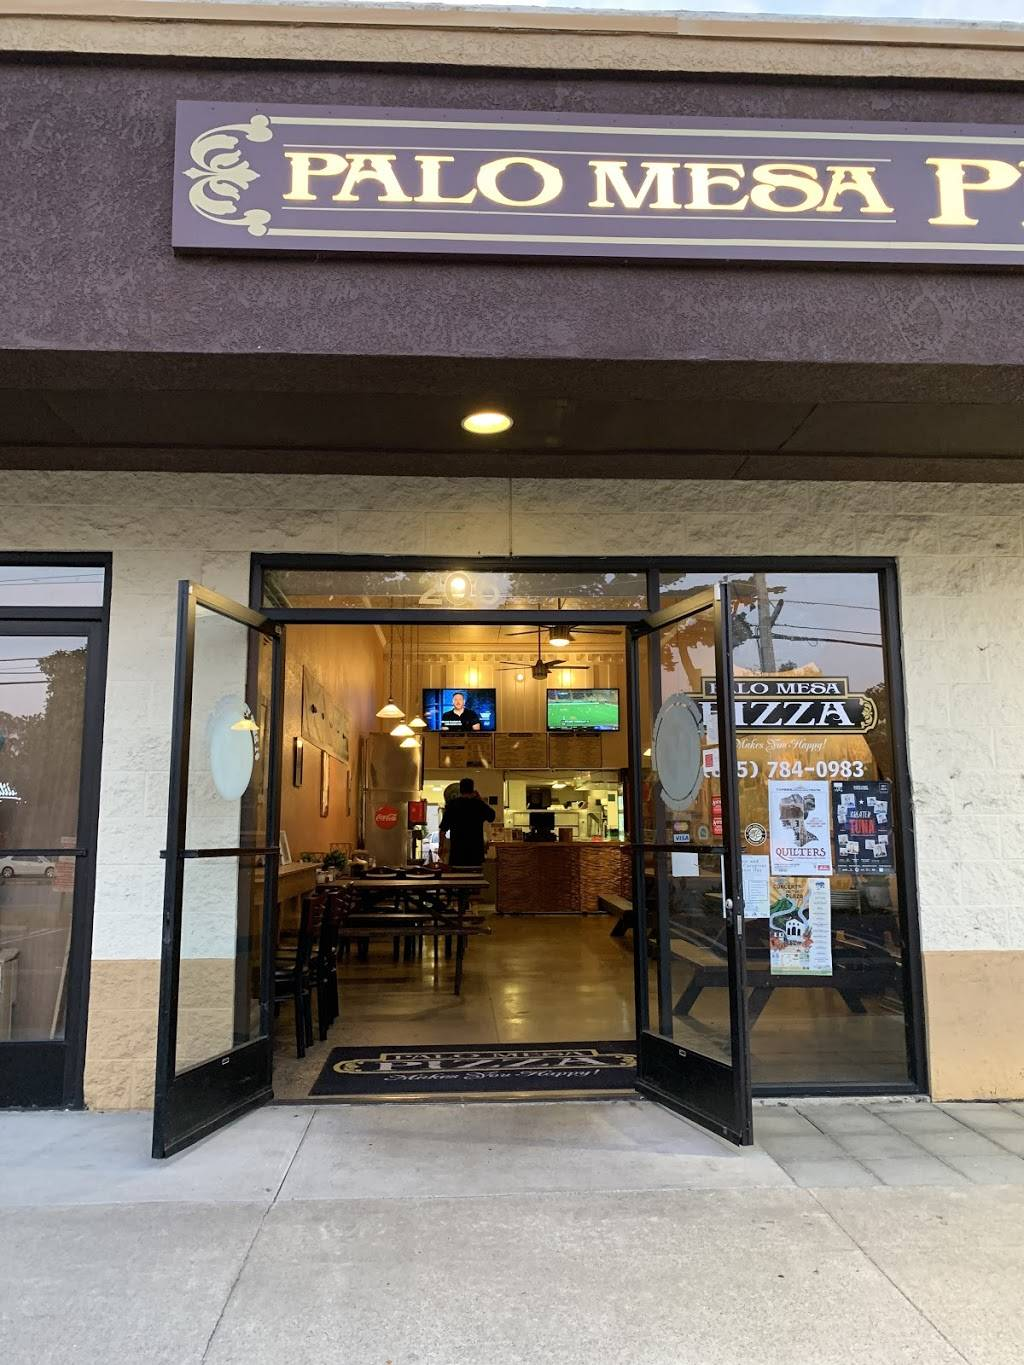 Palo Mesa Pizza III | meal delivery | 3536 S Higuera St #206, San Luis Obispo, CA 93401, USA | 8057840983 OR +1 805-784-0983